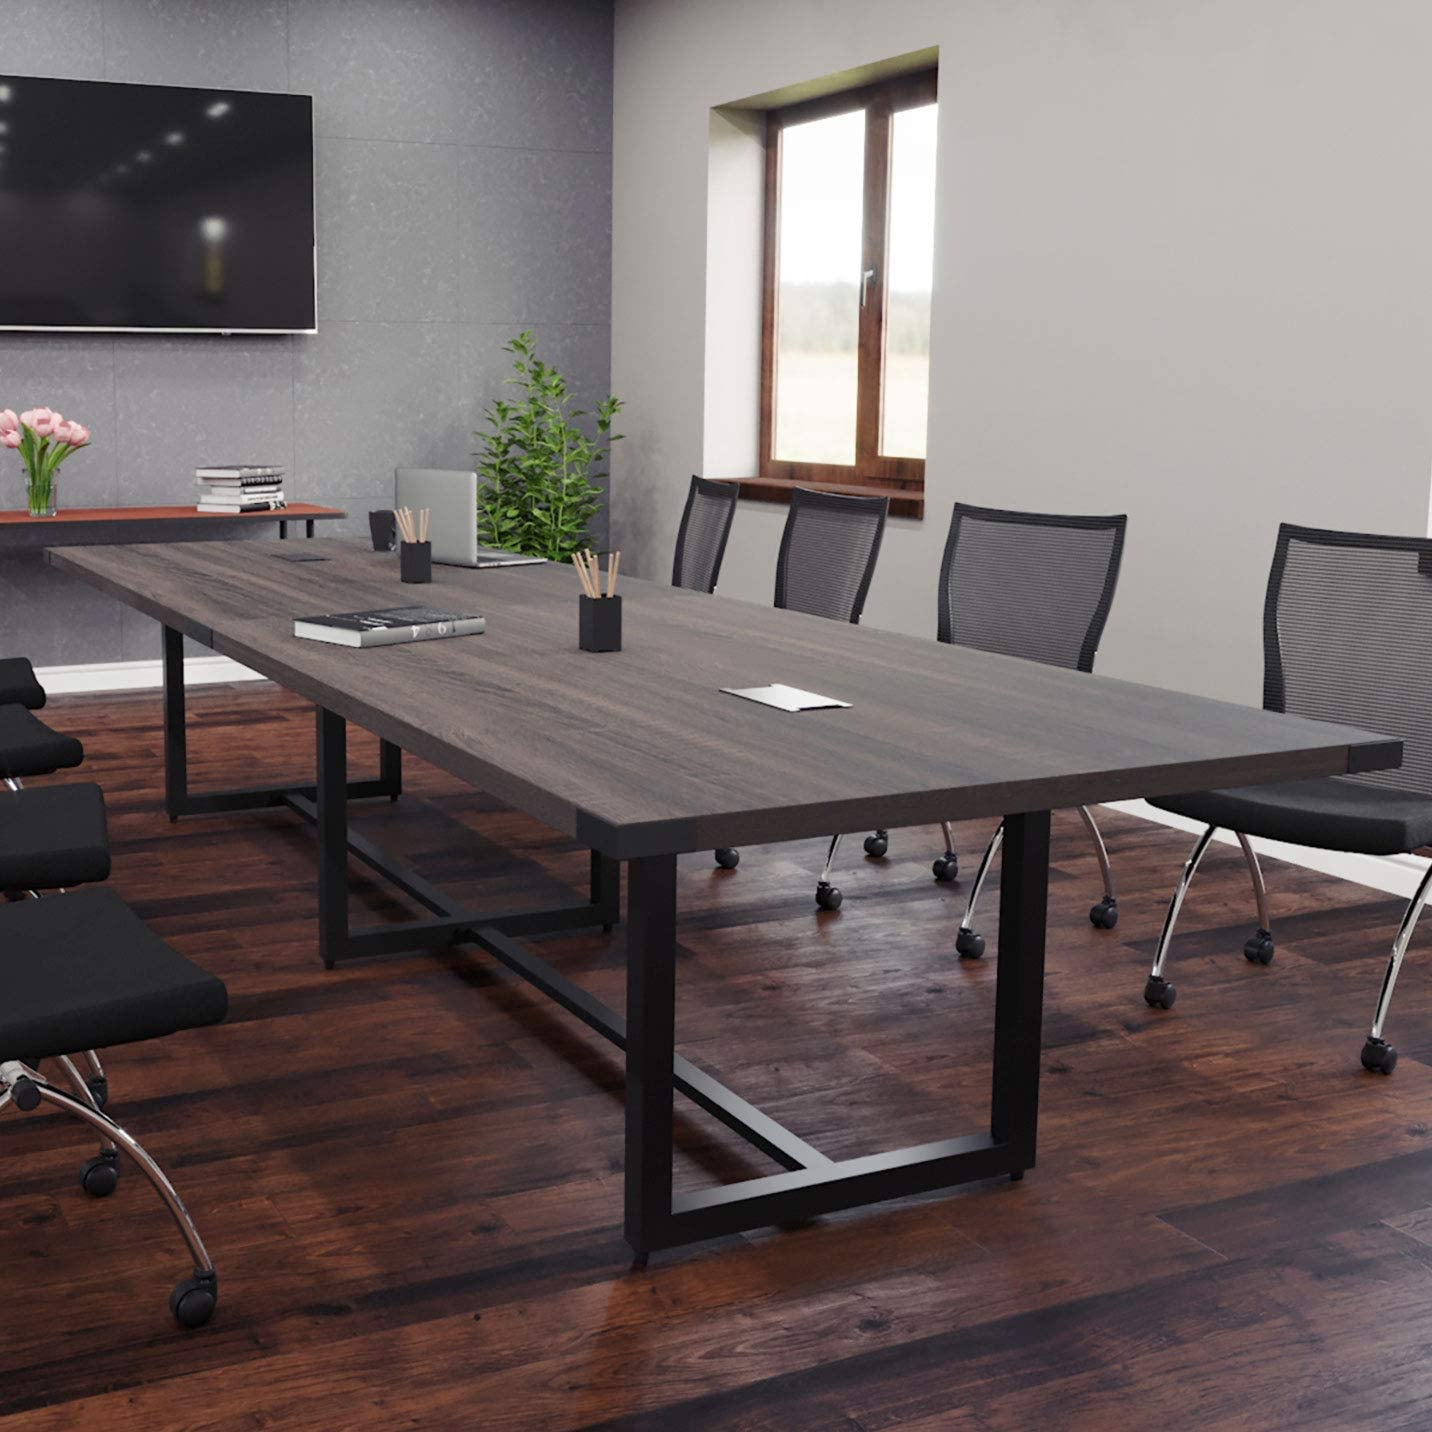 8 Foot - 16 Foot Modern Conference Room Table with Metal Base & Metal Accents (10ft w/ 0 Power Modules, Sand Dune w/Black Metal)